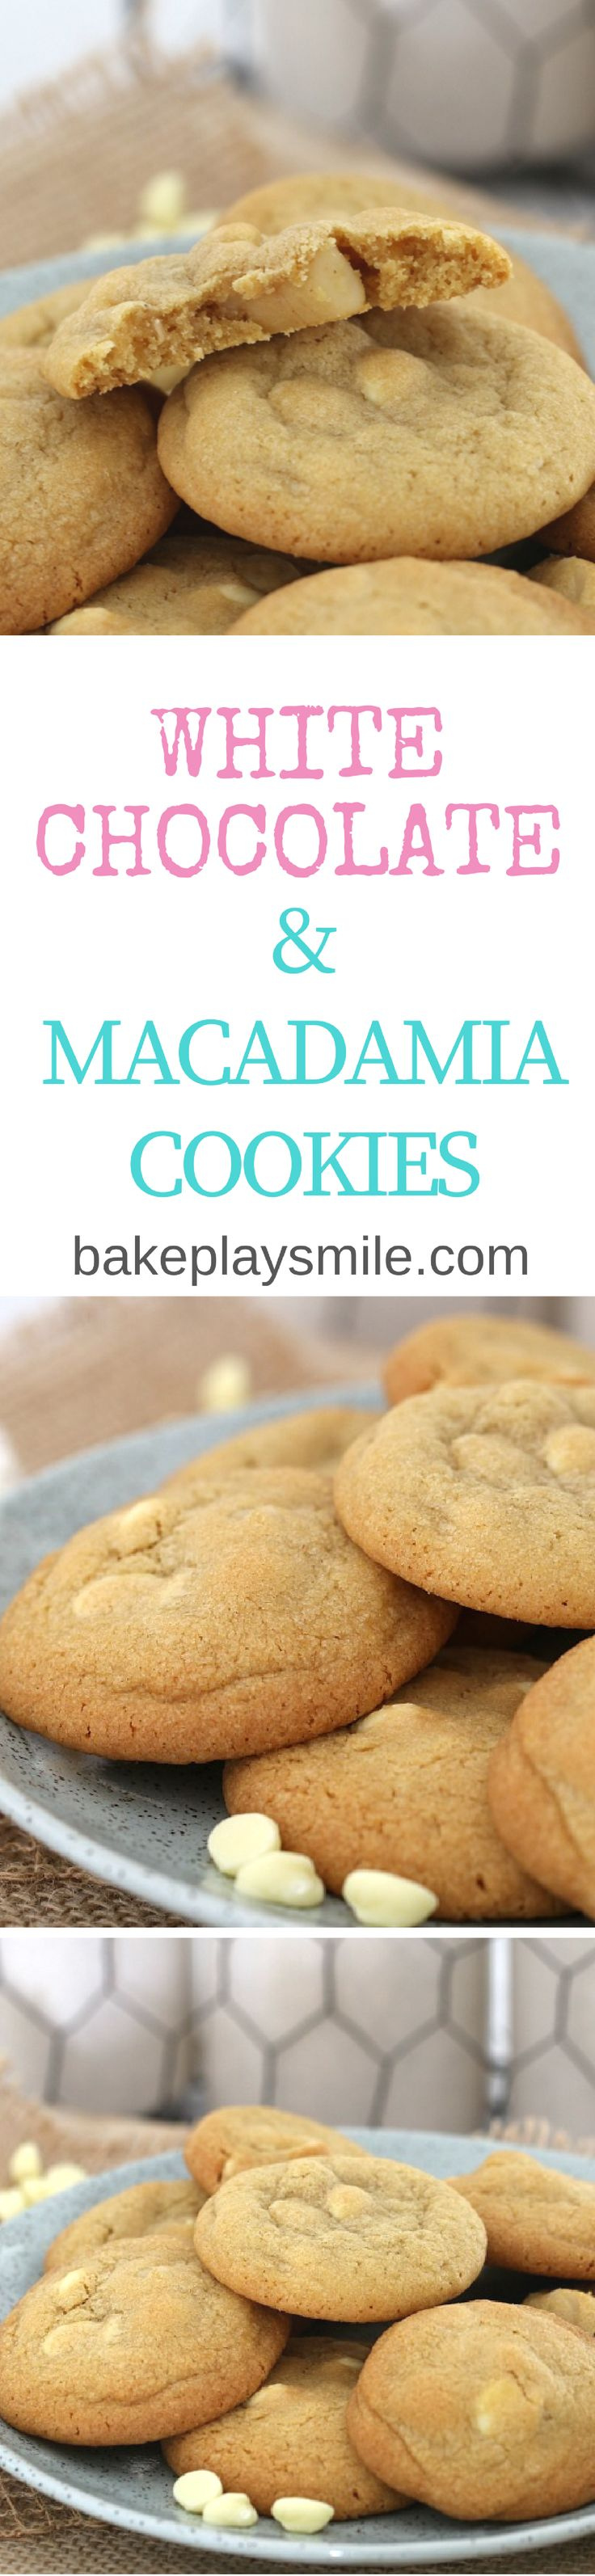 Wait until you try these classic White Chocolate & Macadamia Cookies… they're totally irresistible! Try stopping at just one (it's impossible!!).   #white #chocolate #macadamia #cookies #biscuits #easy #recipe #thermomix #conventional  http://bakeplaysmile.com/white-chocolate-macadamia-cookies/